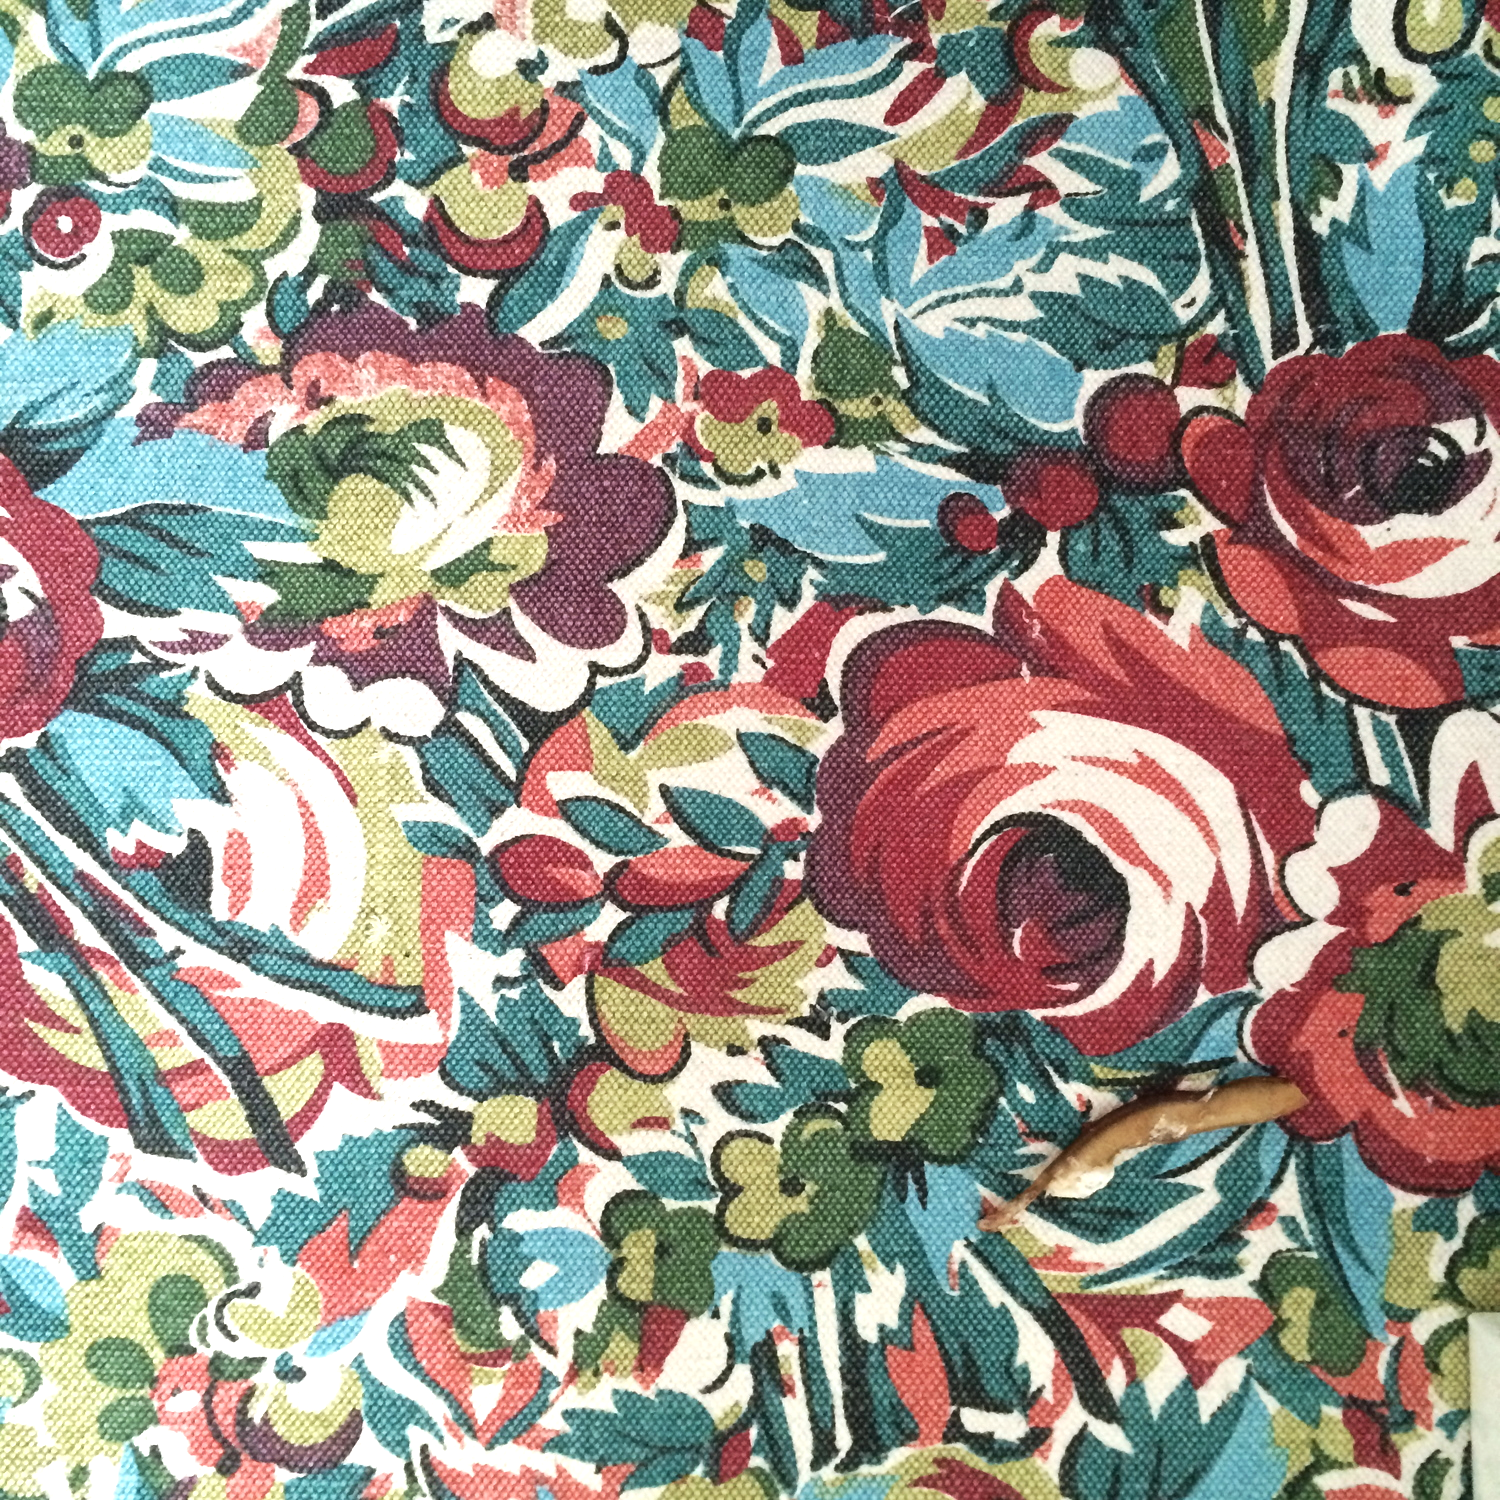 a very loud, very floral rug, which i had some doubts about but have decided to embrace.